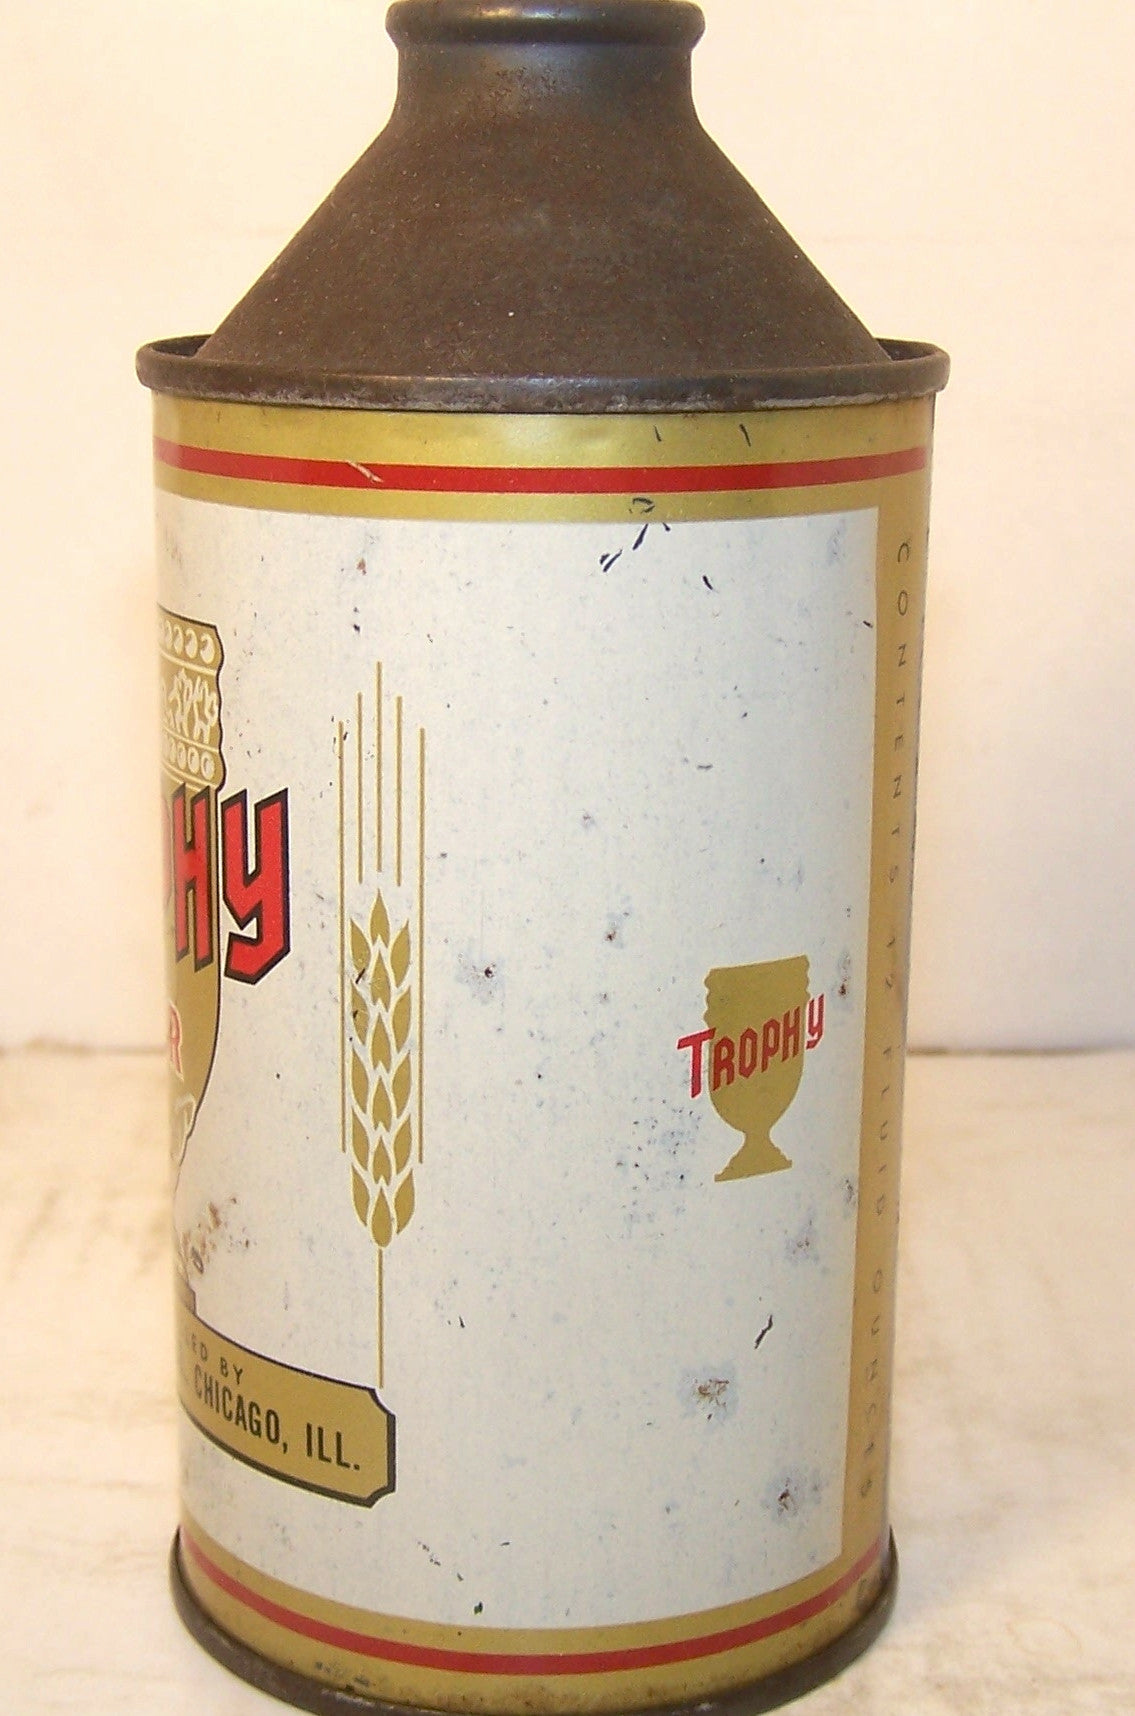 Trophy Beer, USBC 187-12, Grade 1- Sold on 6/22/15